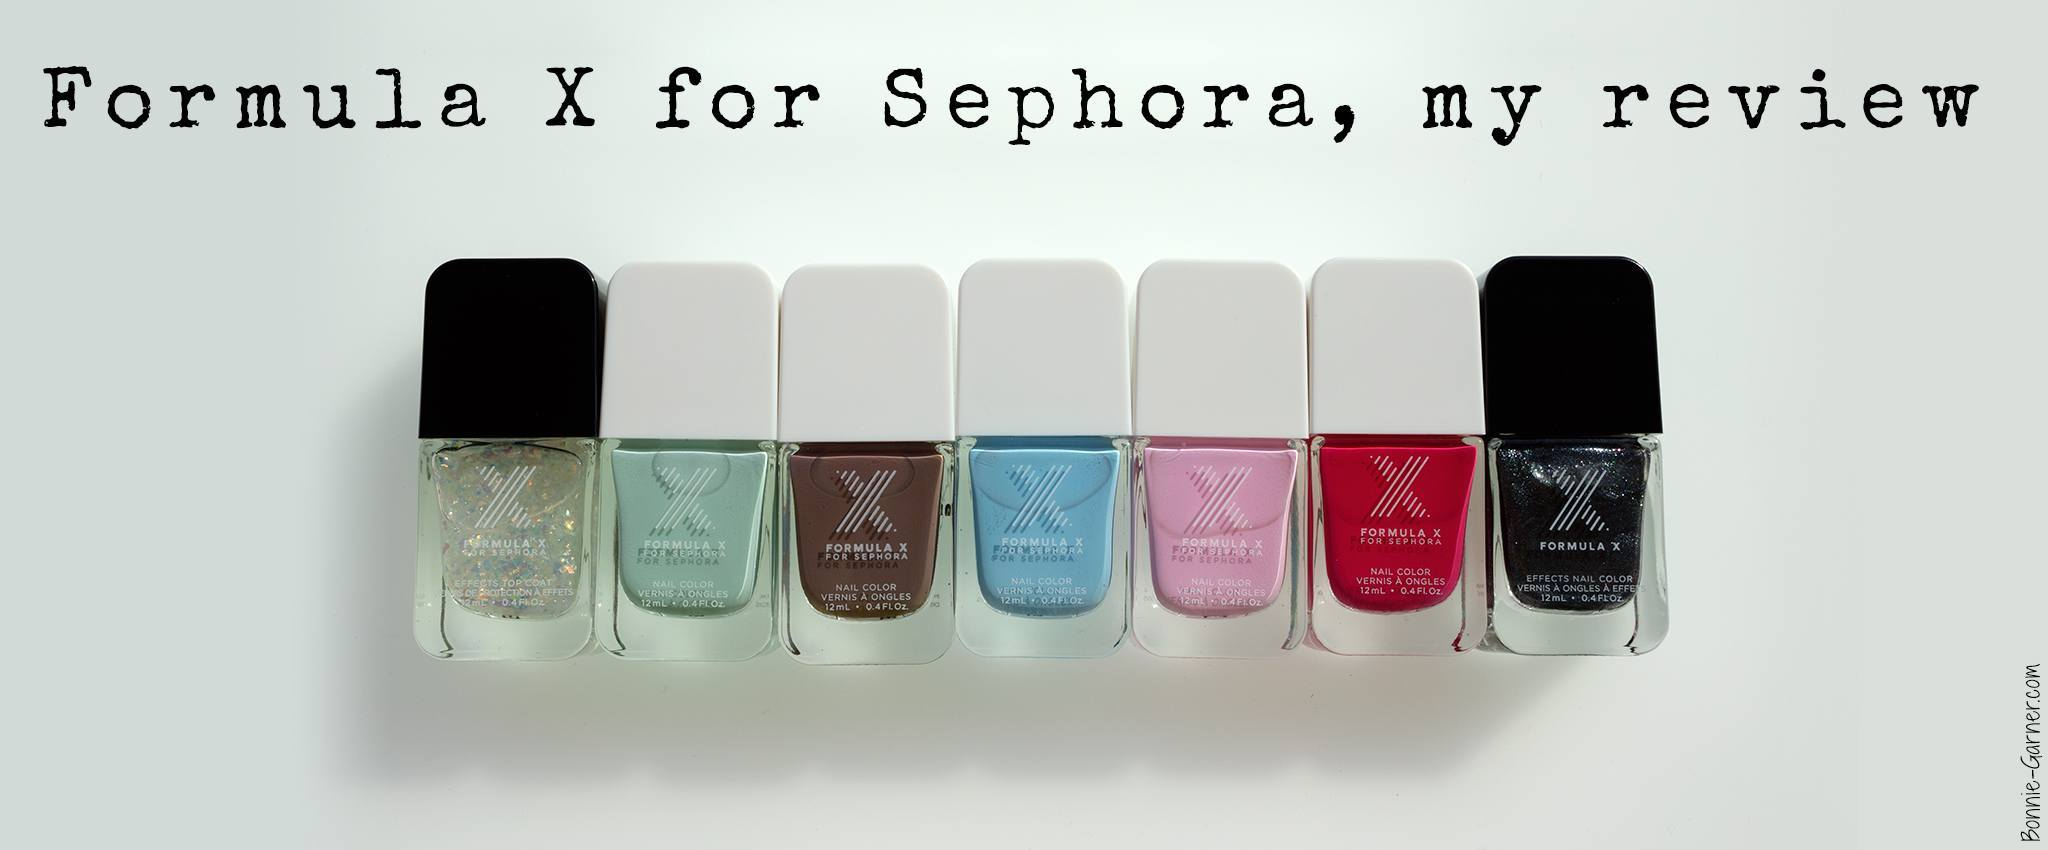 Formula X for Sephora my review